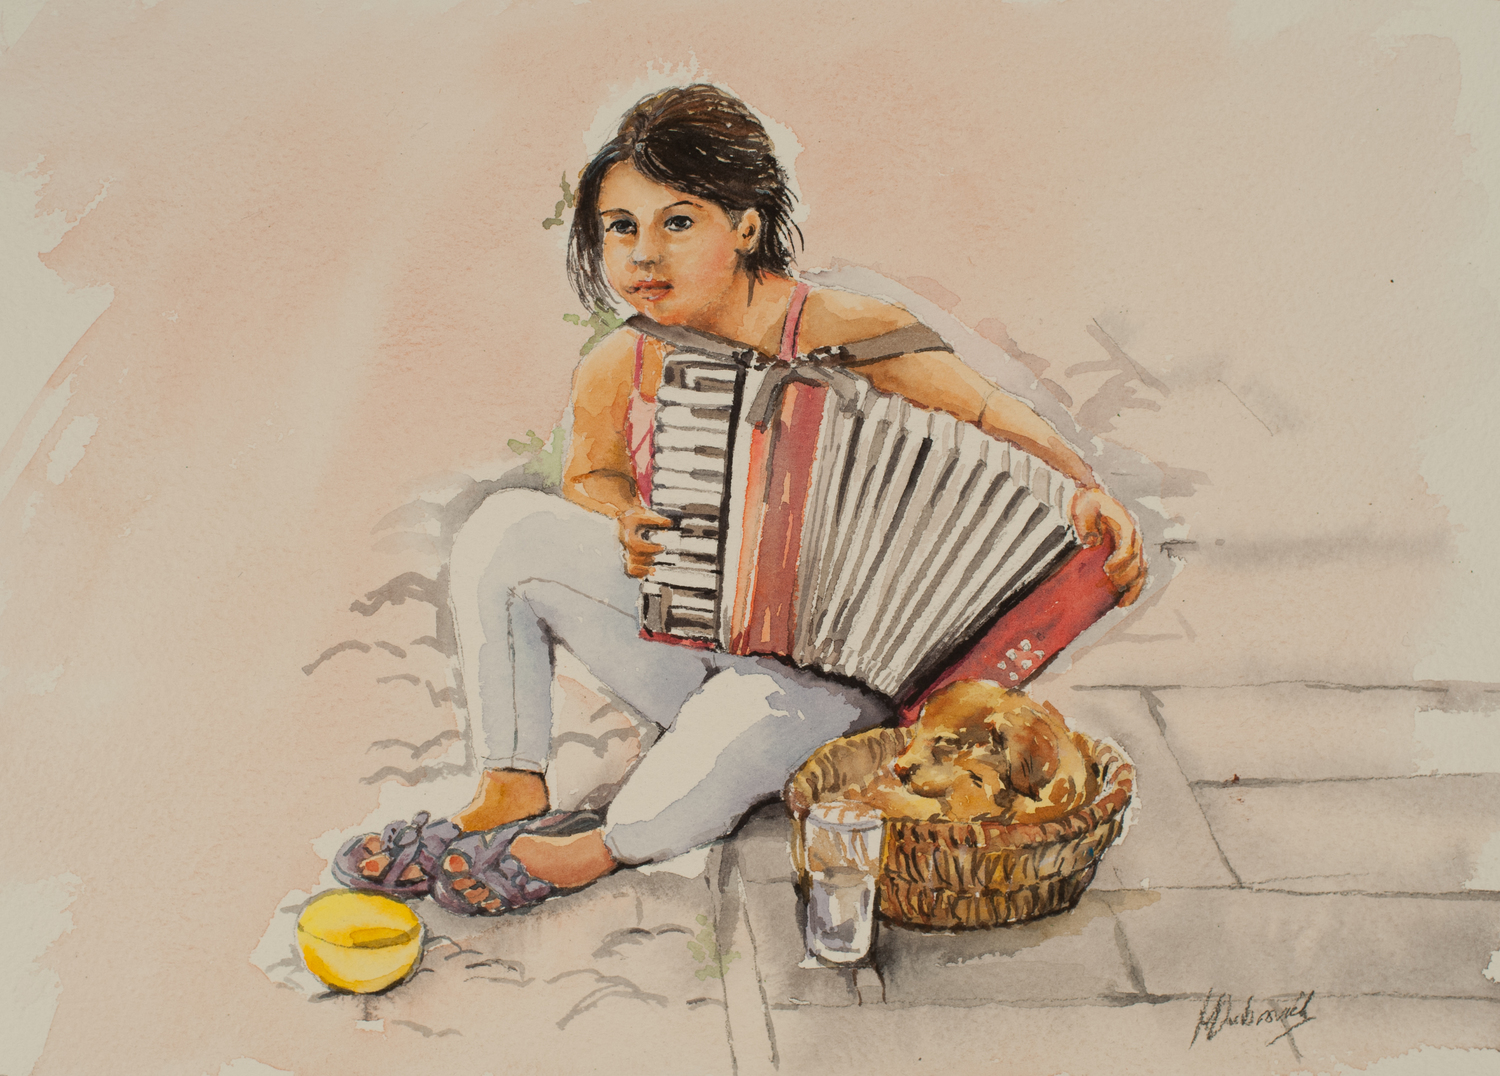 THe Little Busker - The island of Rhodes, GREECE